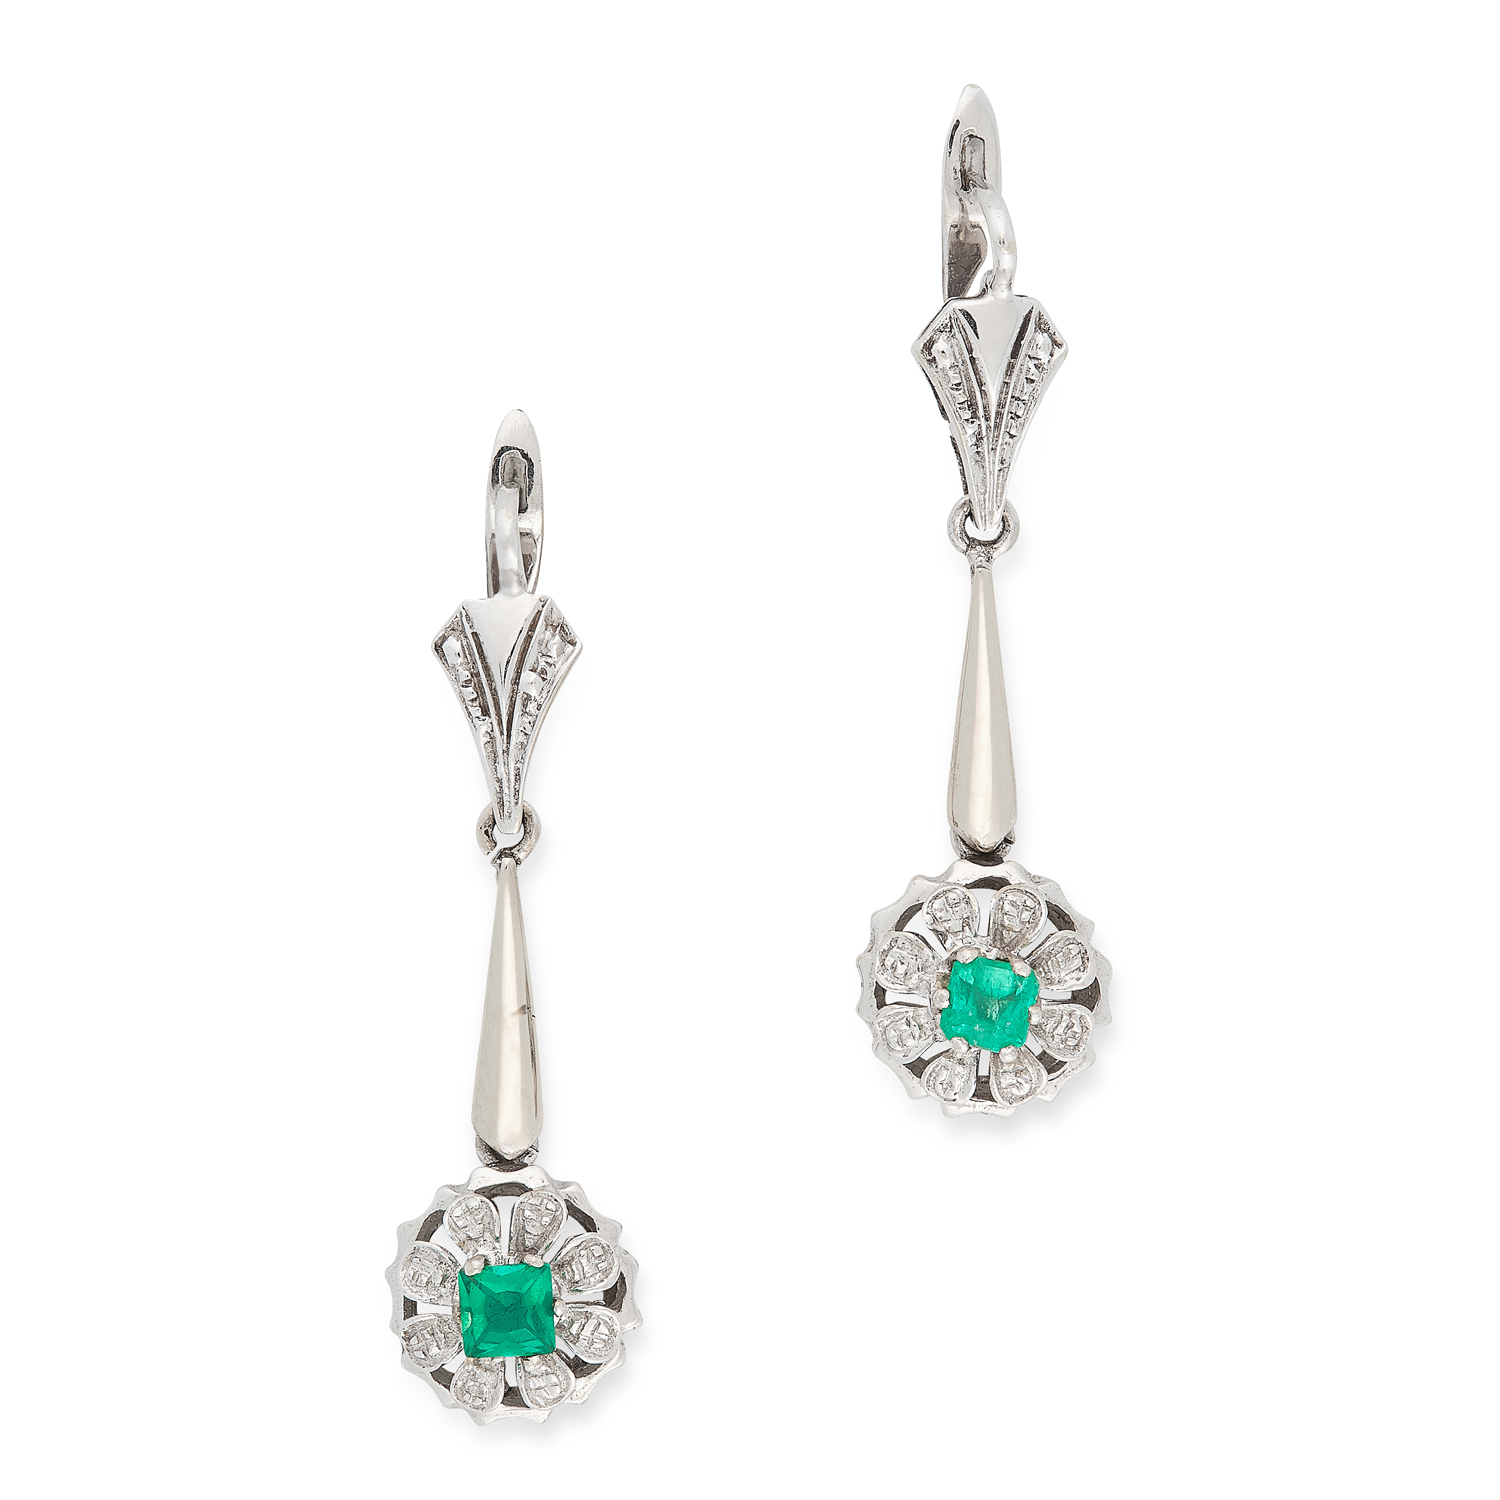 A PAIR OF EMERALD DROP EARRINGS each formed of a bar suspending a drop set with an emerald cut